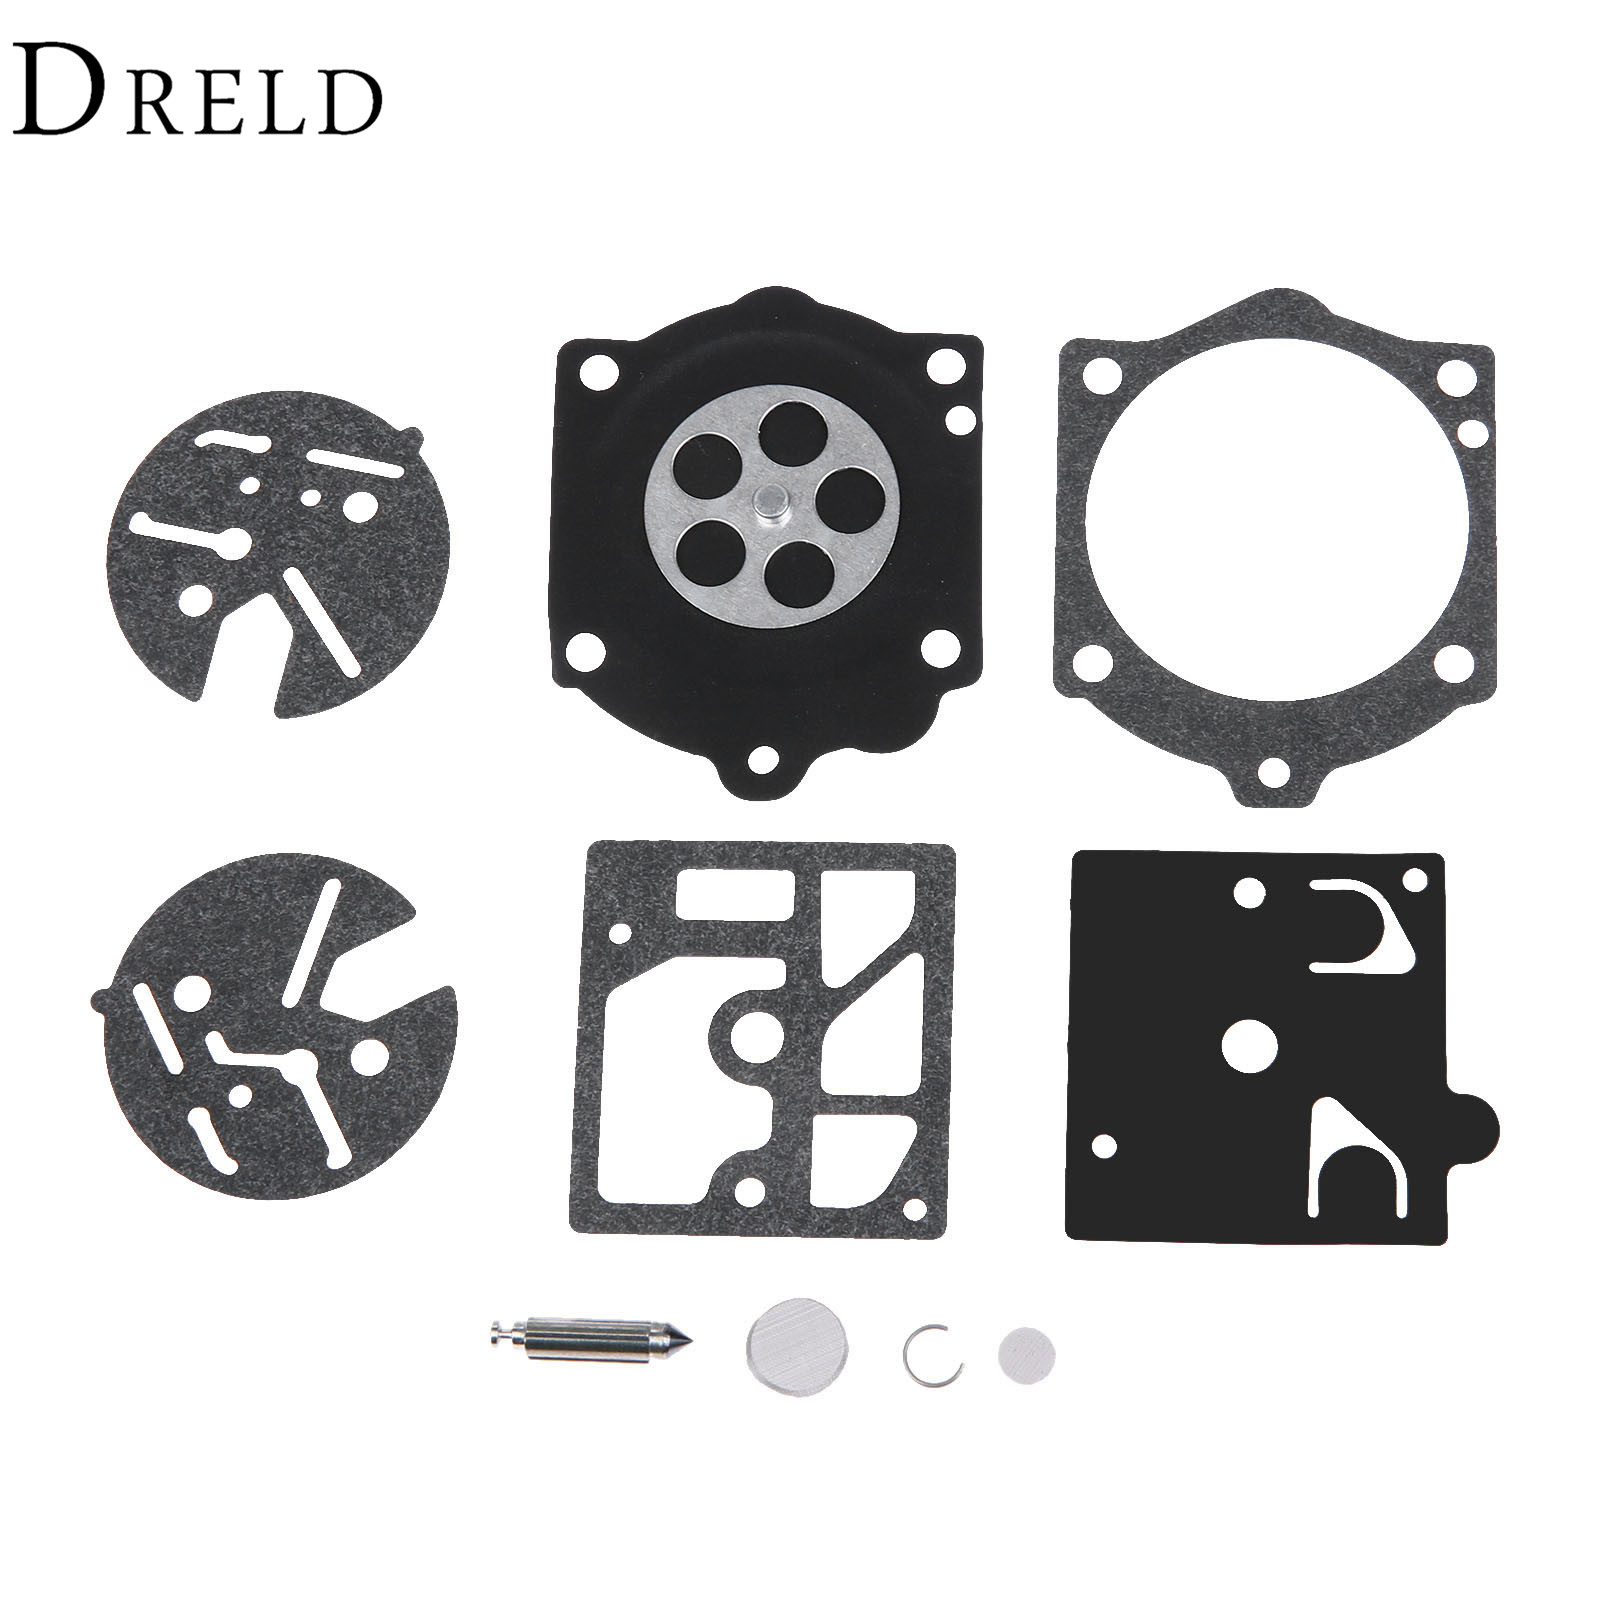 DRELD Carburetor Carb Repair Kit For Stihl 015 Homelite ST160 ST180 Chainsaw 44 240 S For Solo 600 605 606 616 631